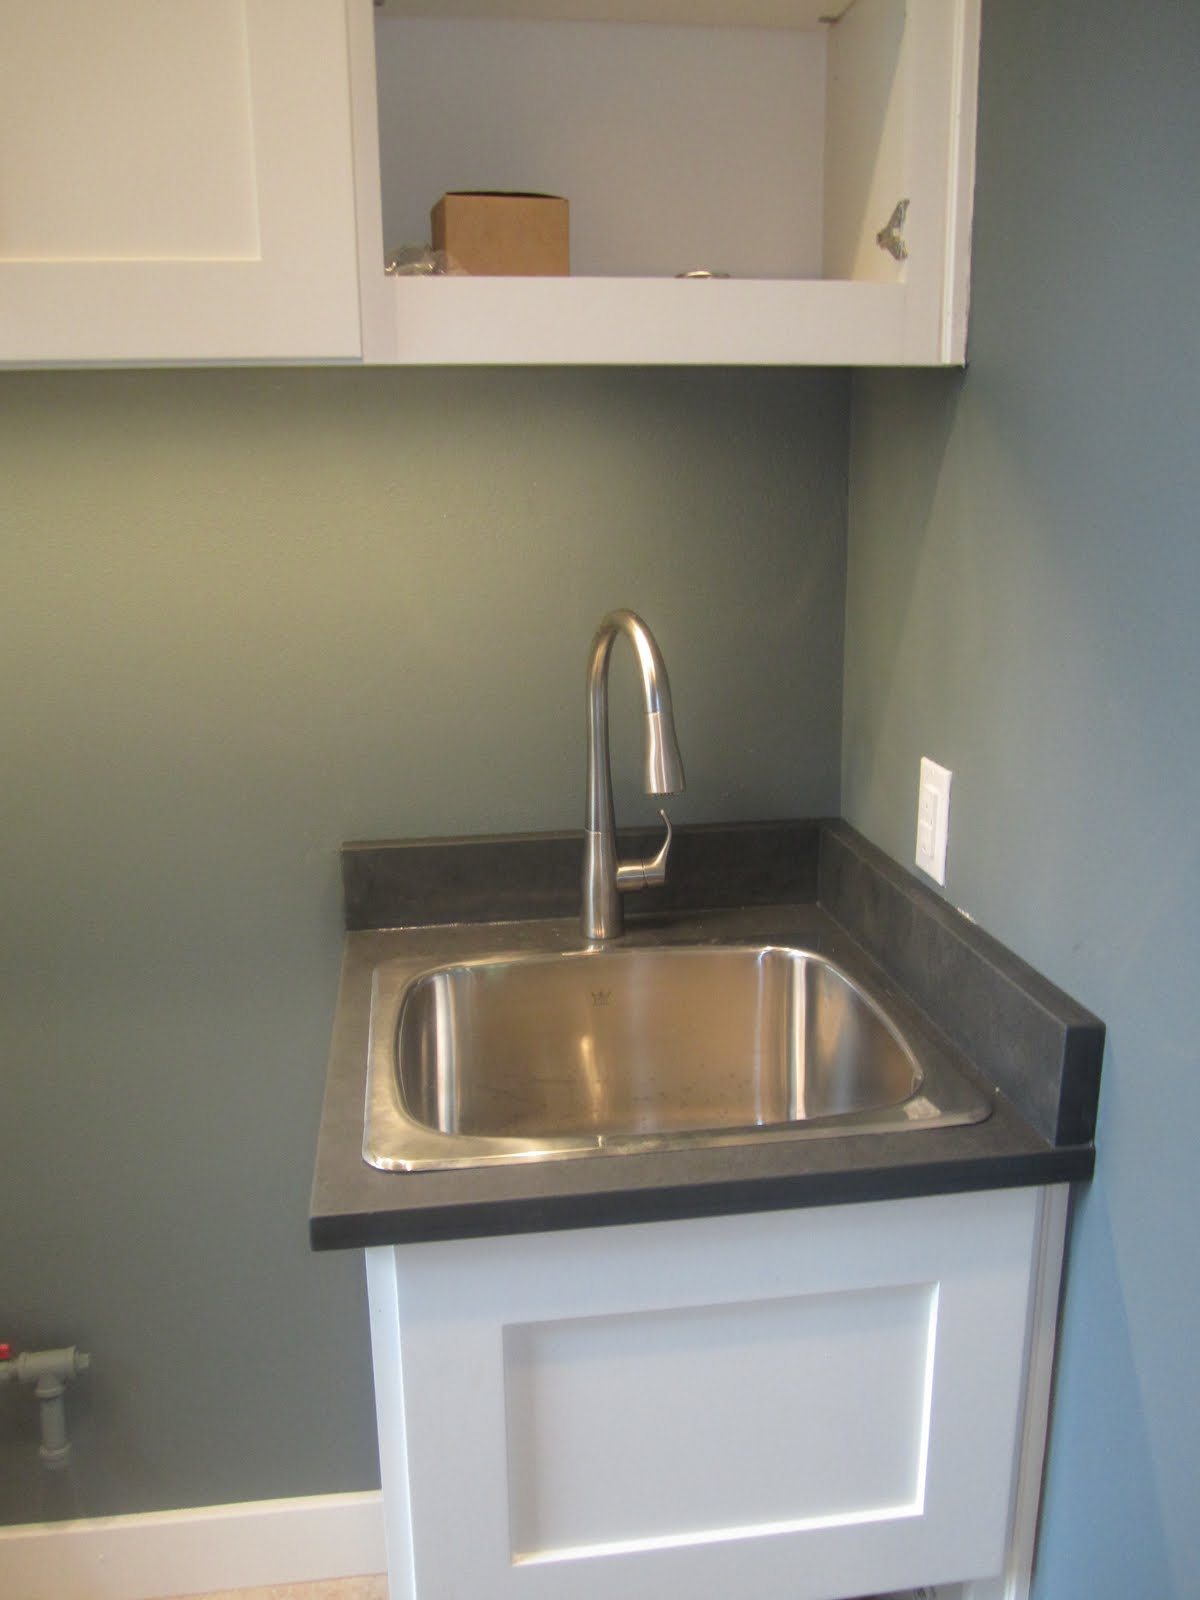 18 Inch Utility Sink With Cabinet : Posted by Pro at 11:18 AM